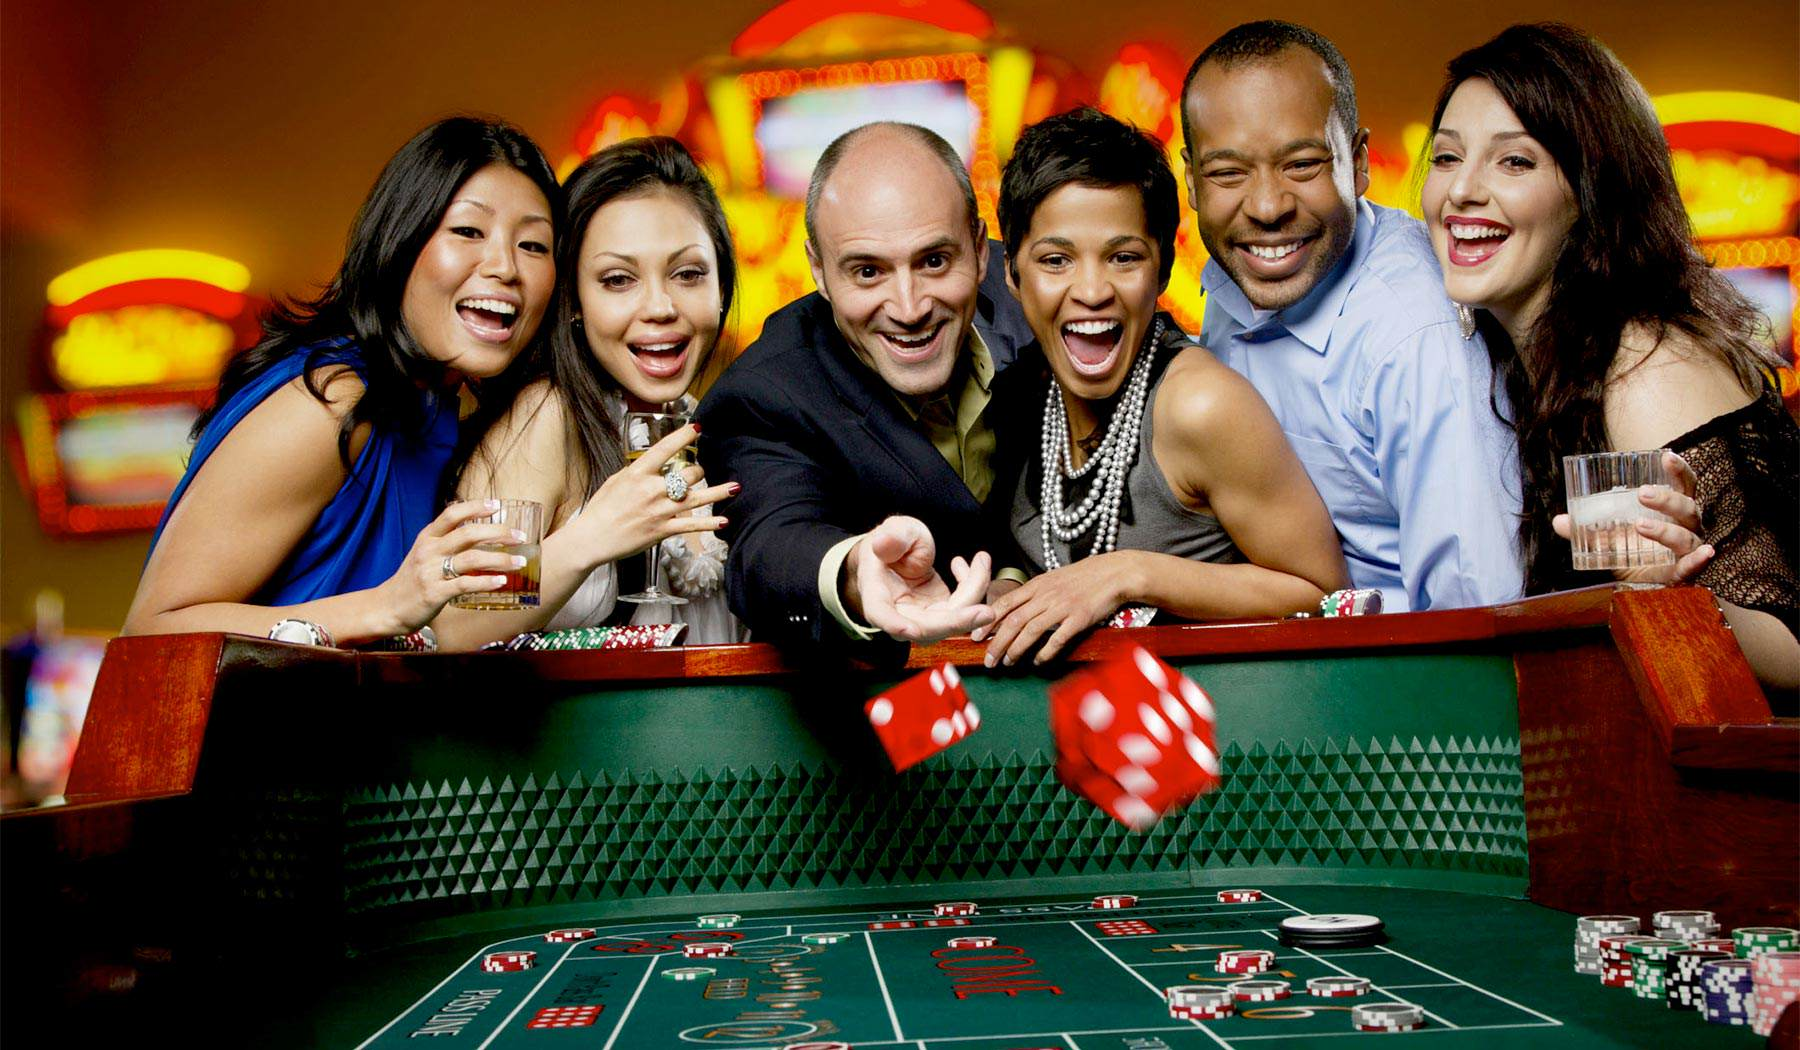 Images of people enjoying gambling at Clearwater Casino